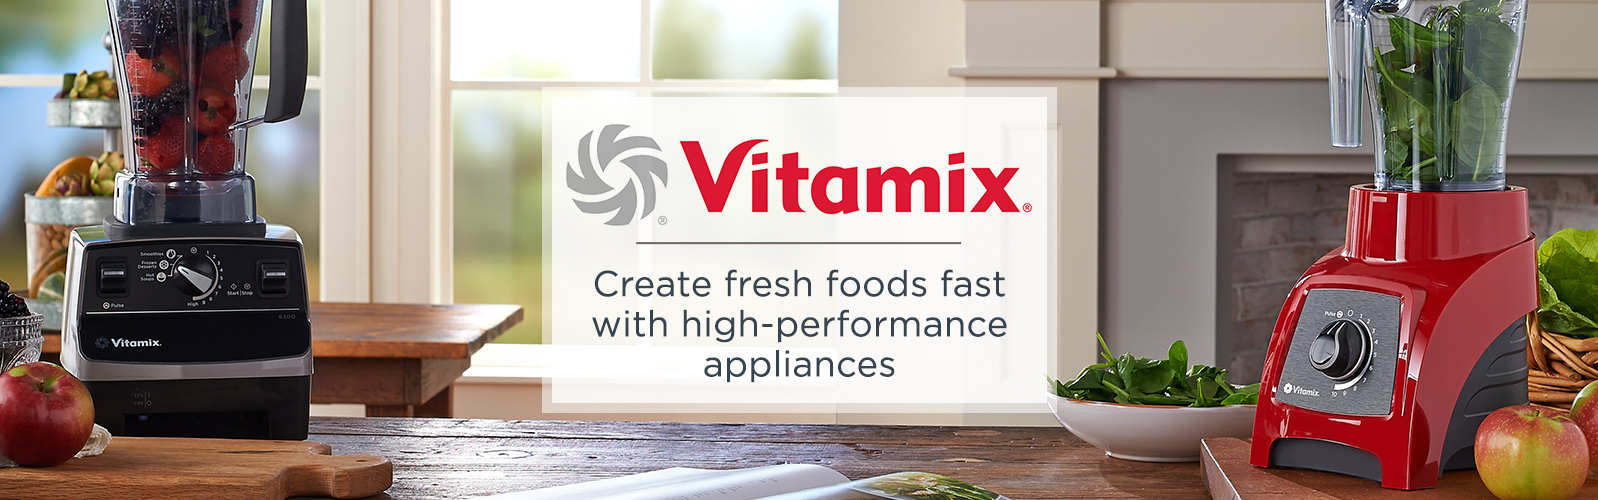 Vitamix.  Create fresh foods fast with a high-performance appliances.